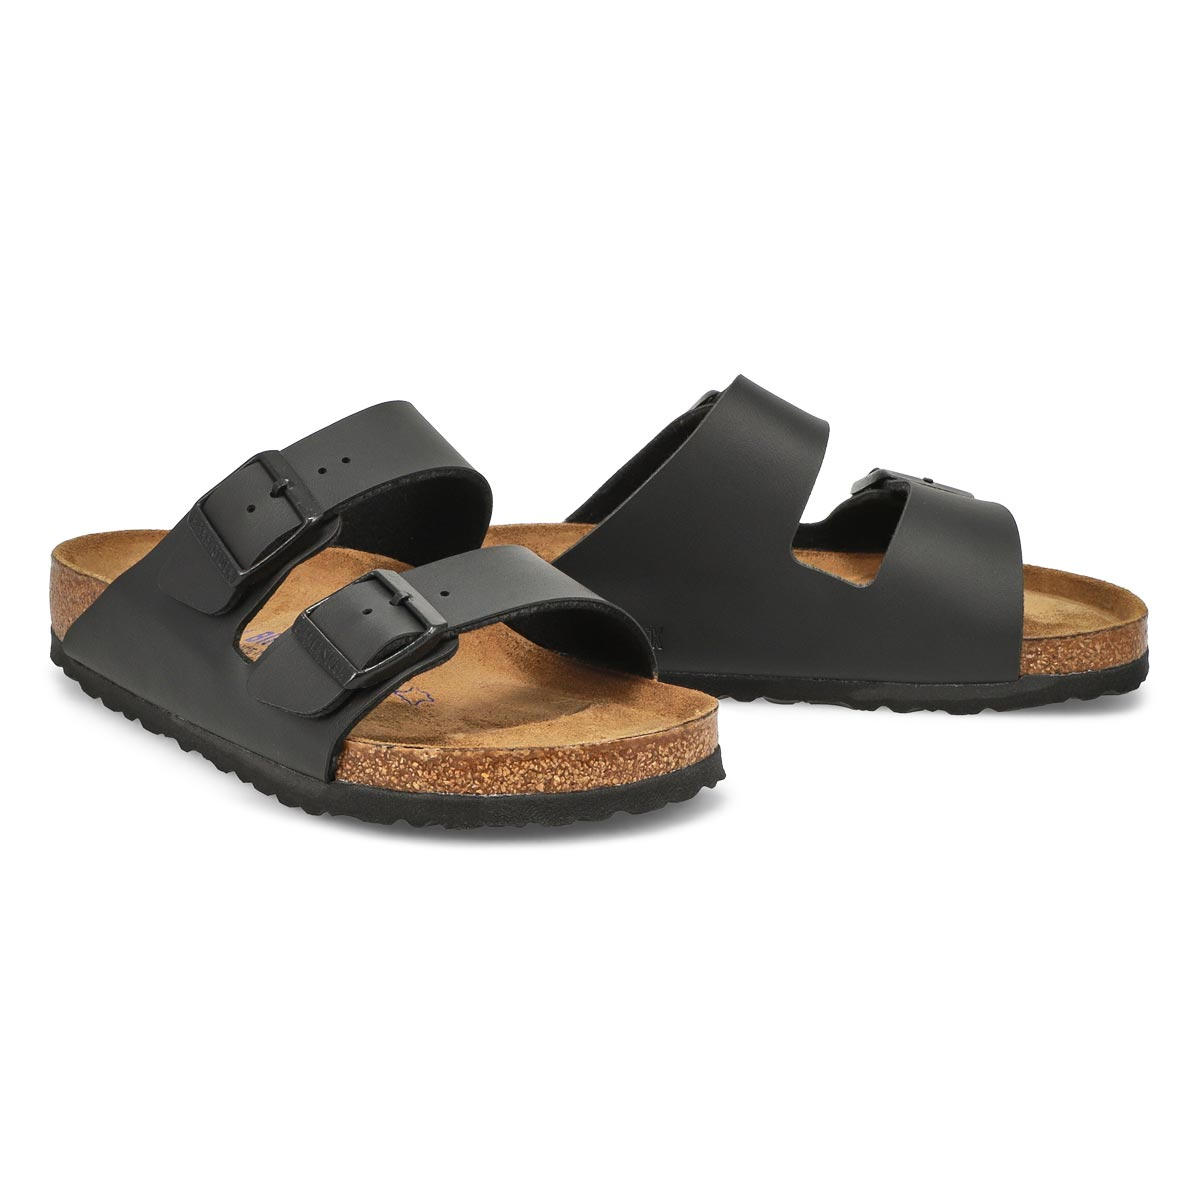 Lds Arizona BF black 2 strap sandal - SF